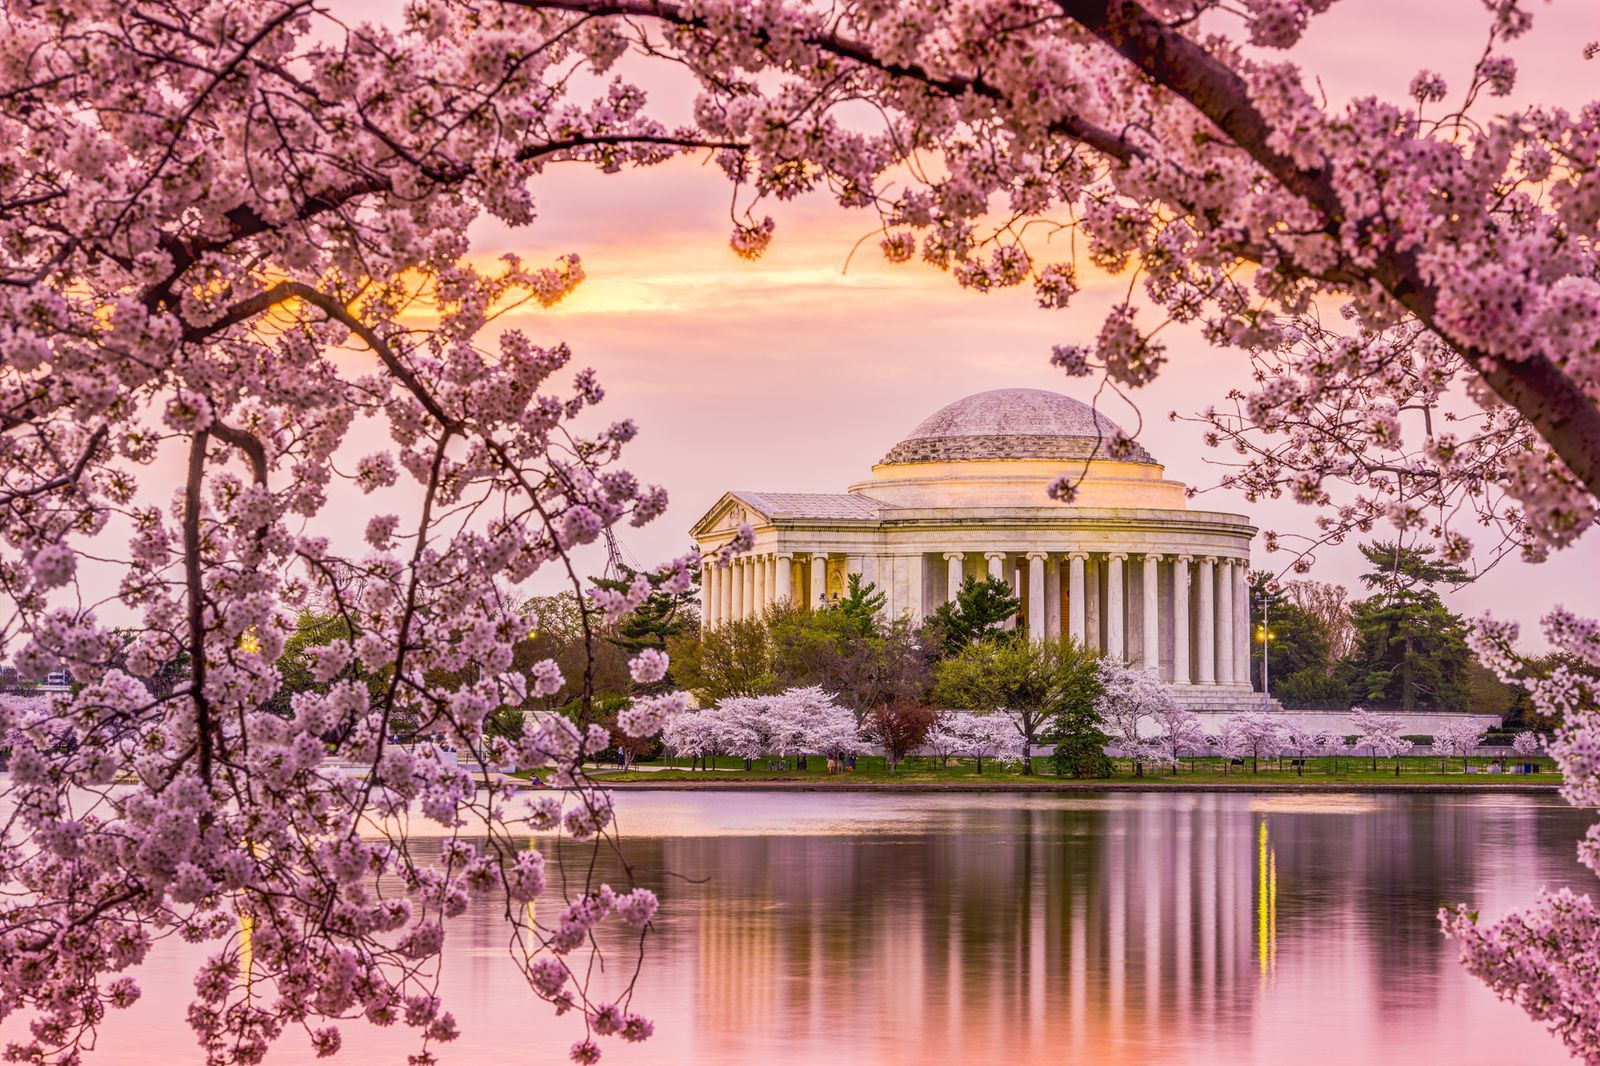 How To See Washington Dc S Cherry Blossoms Cherry Blossom Festival Dc Cherry Blossom Pictures Cherry Blossom Festival